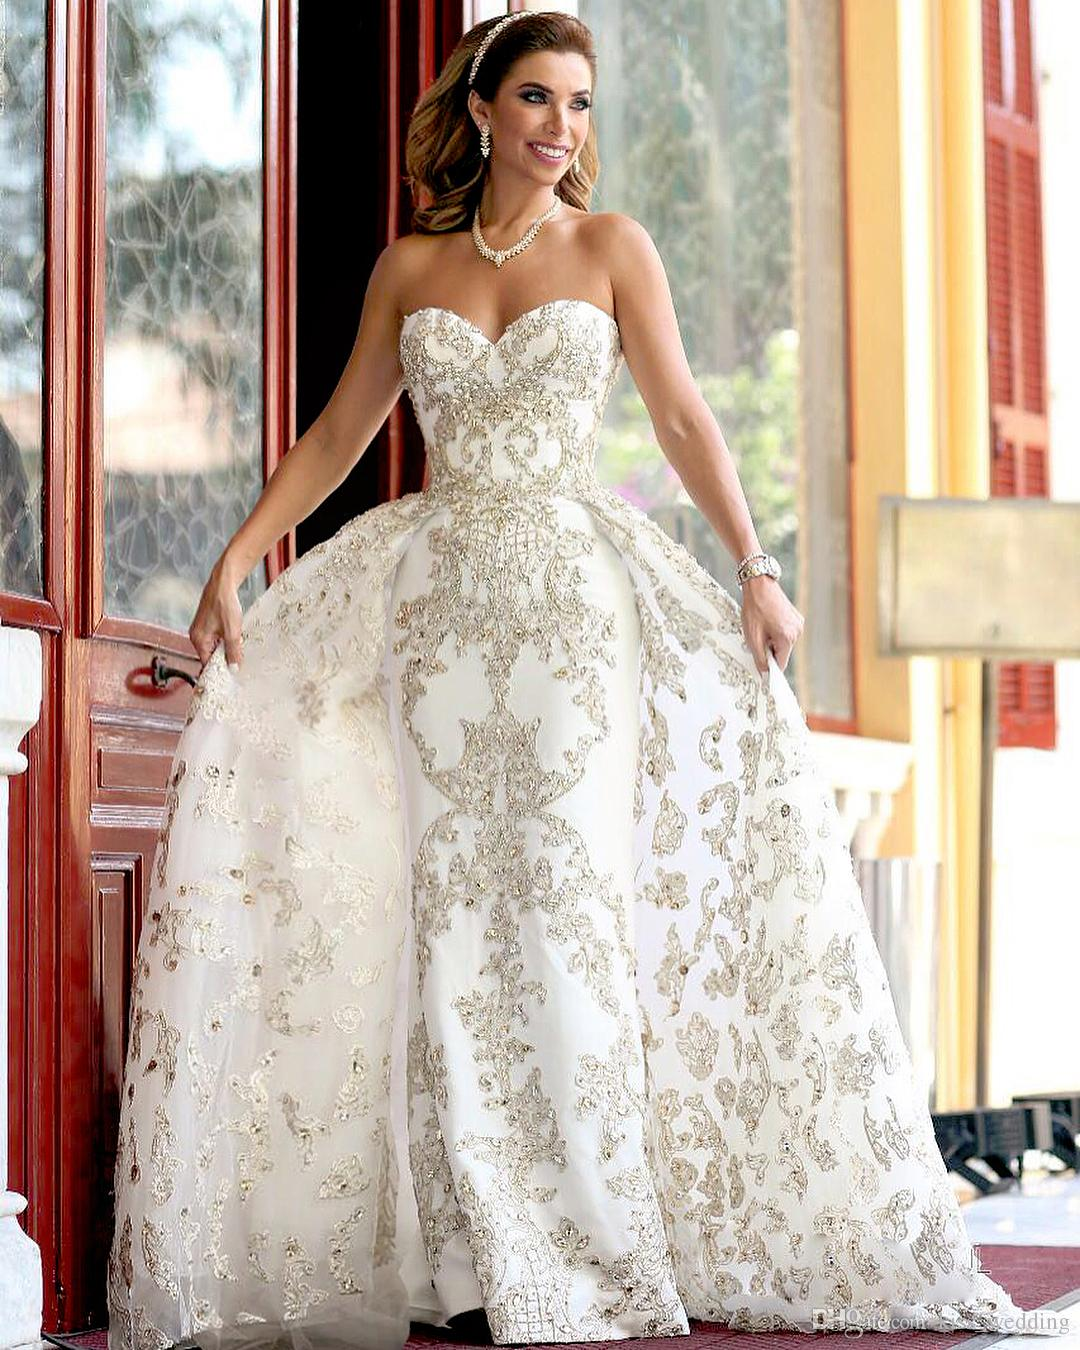 91493c384d0d0 Bling Bling Beads Long Wedding Dresses Bridal Gowns Detachable Train  Overskirts Sweetheart Sheath Wedding Gown Appliqued Lace Crystals Halter  Neck Wedding ...